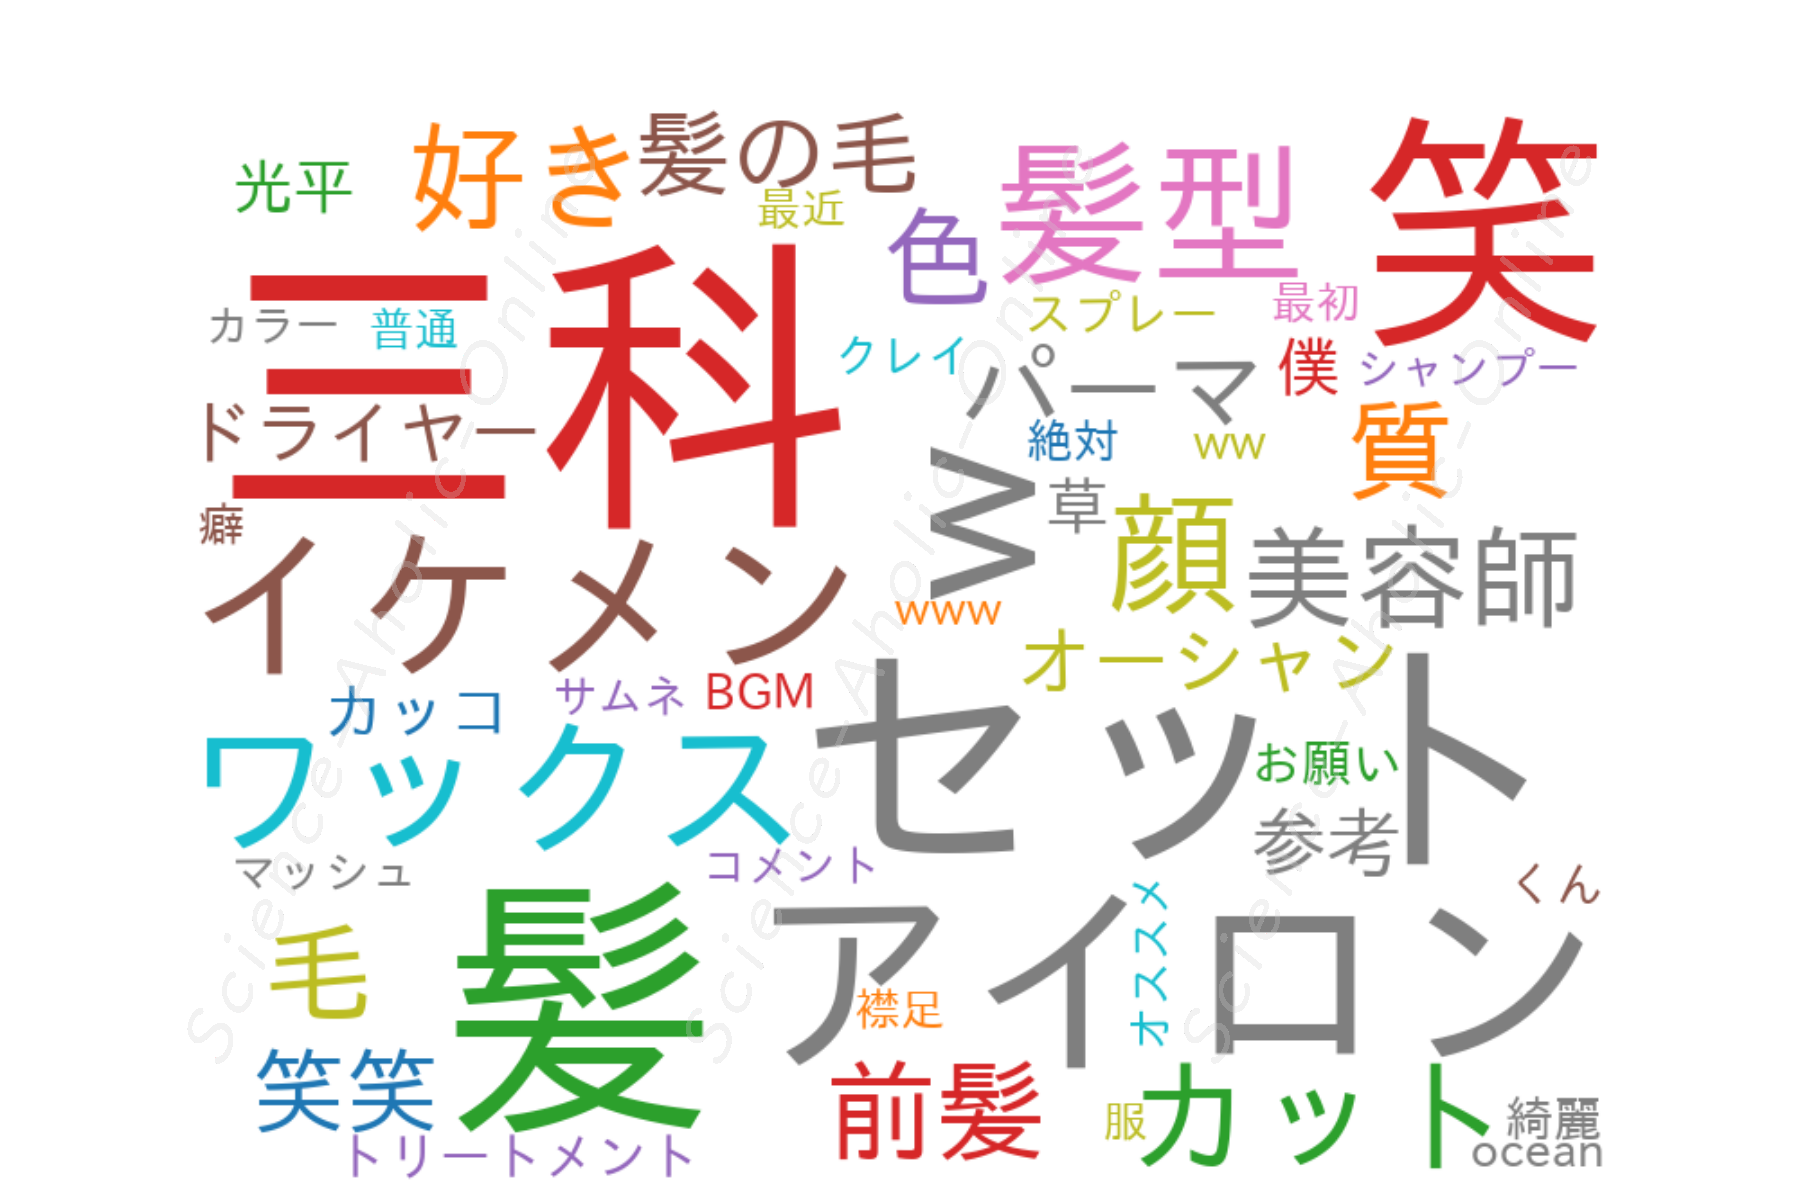 https://science-aholic-online.com/wp-content/uploads/2020/08/wordcloud_三科光平.png